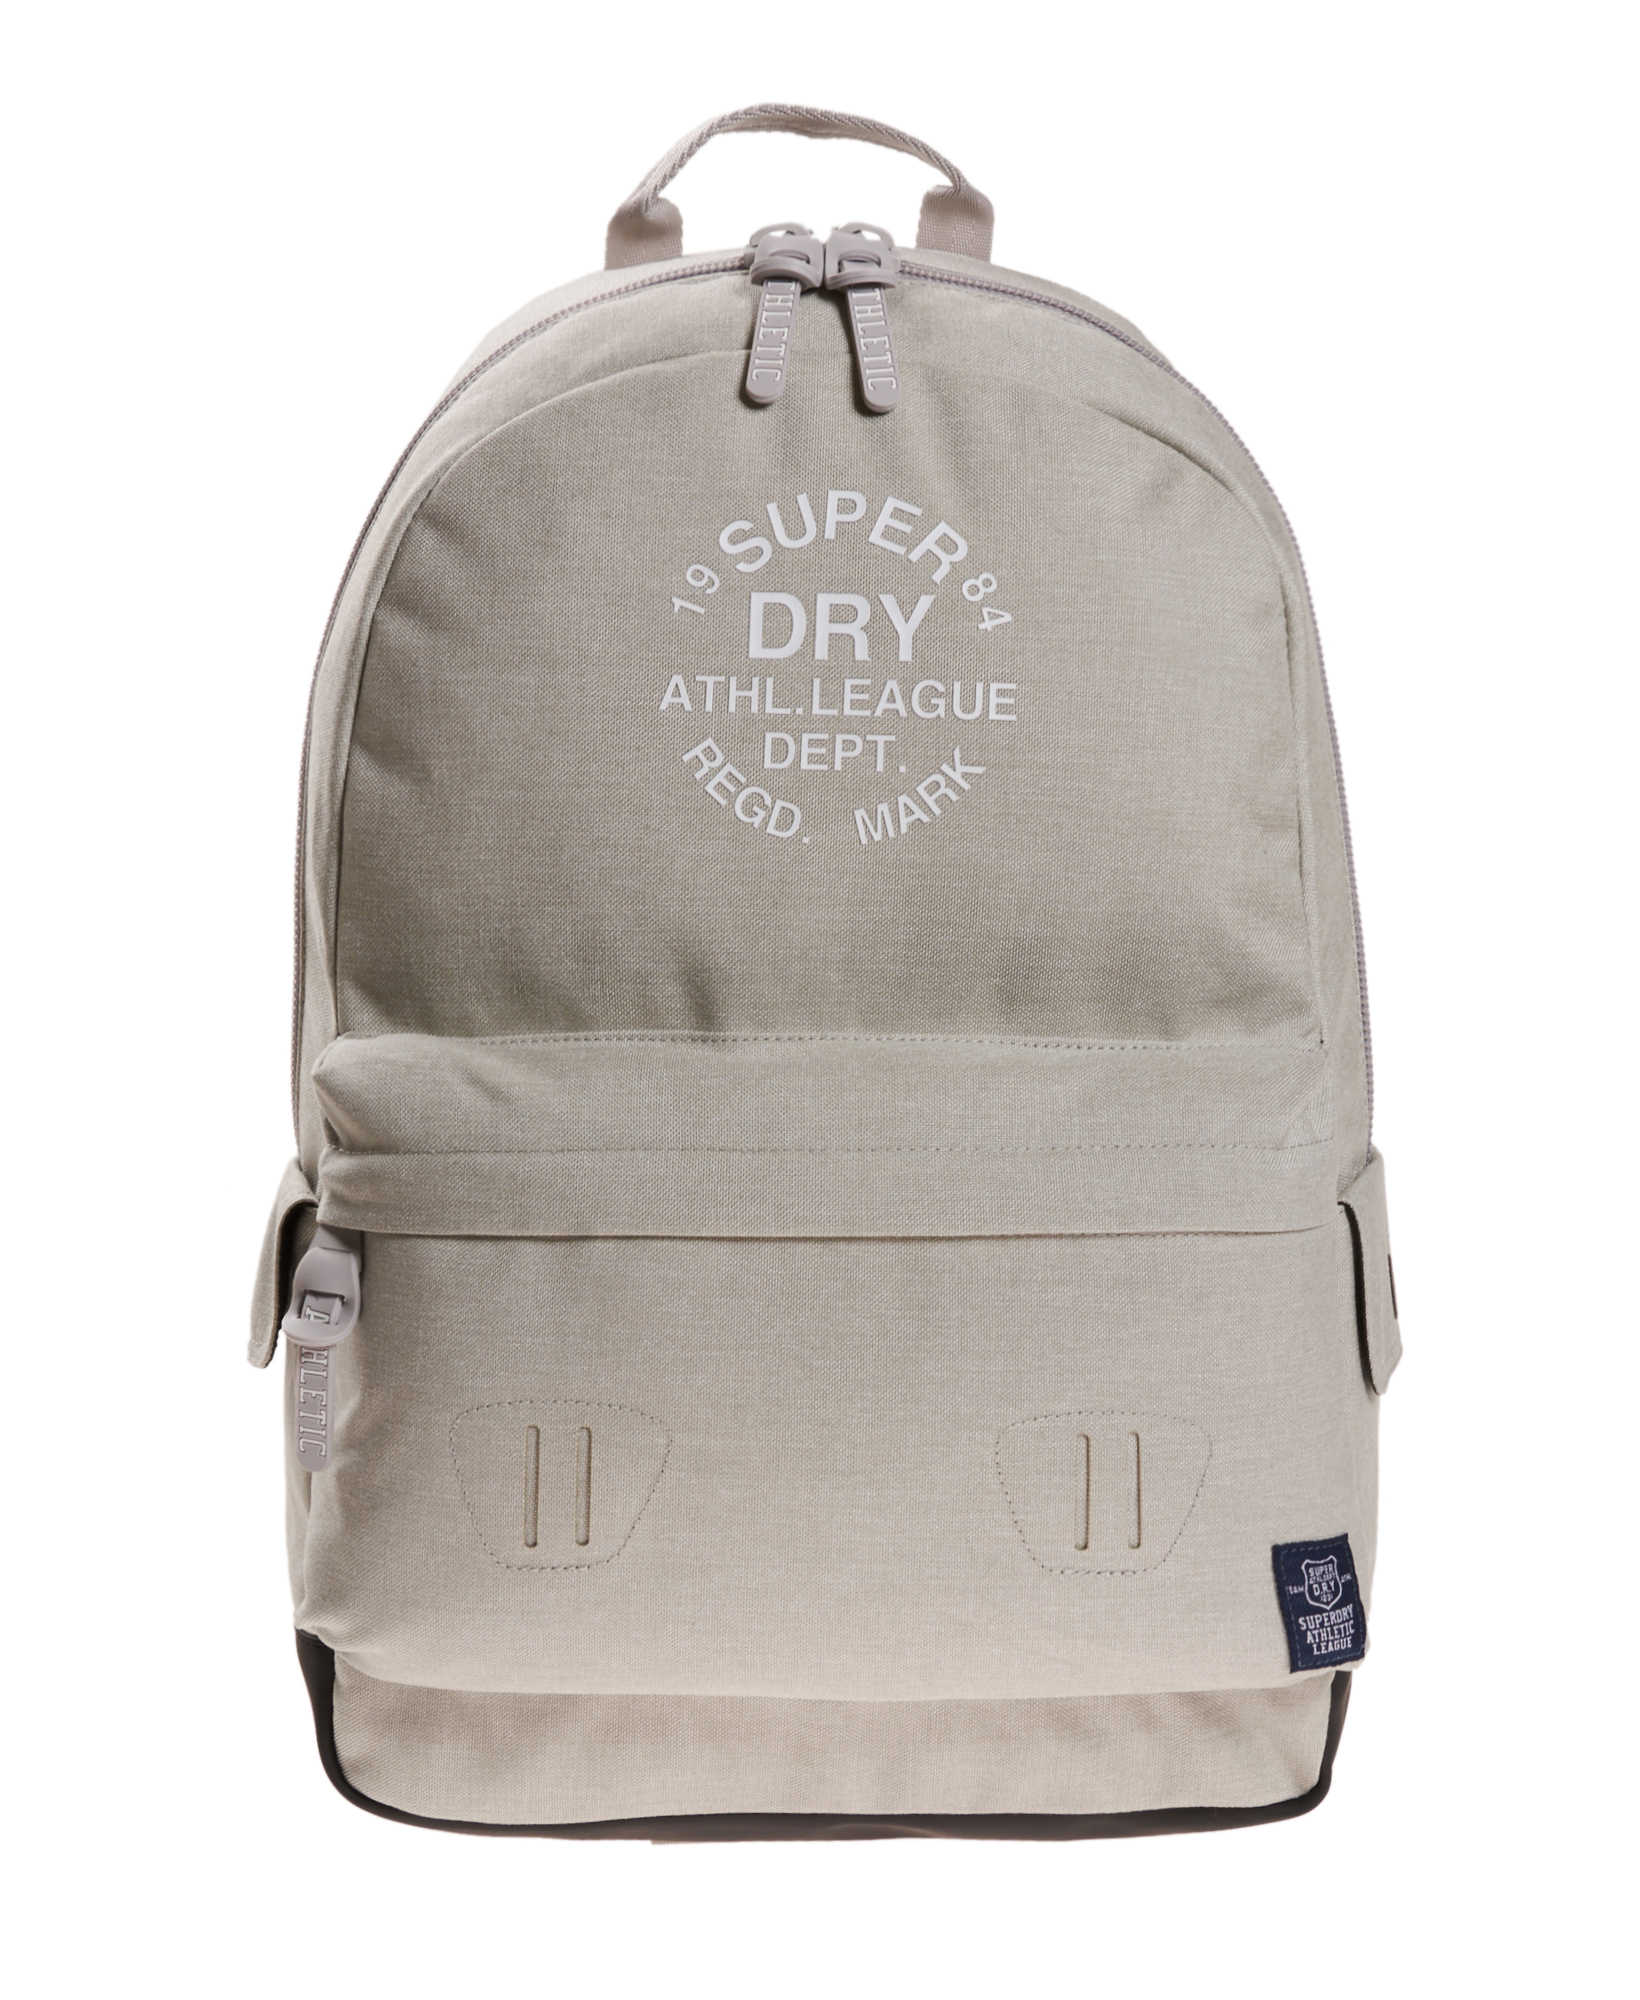 competitive price c52ee 2d22a Details zu Neue Superdry Athletic League Montana Rucksack Grau